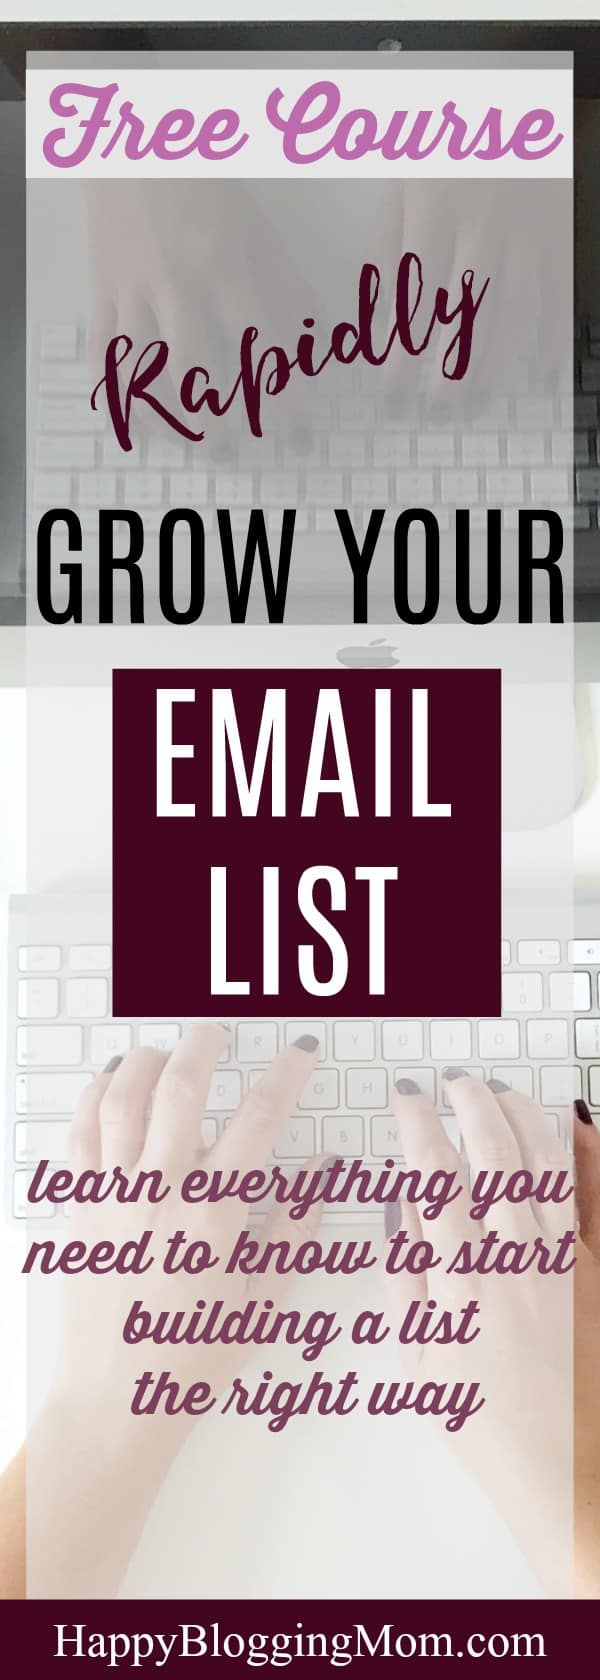 Rapidly Grow Your Email List